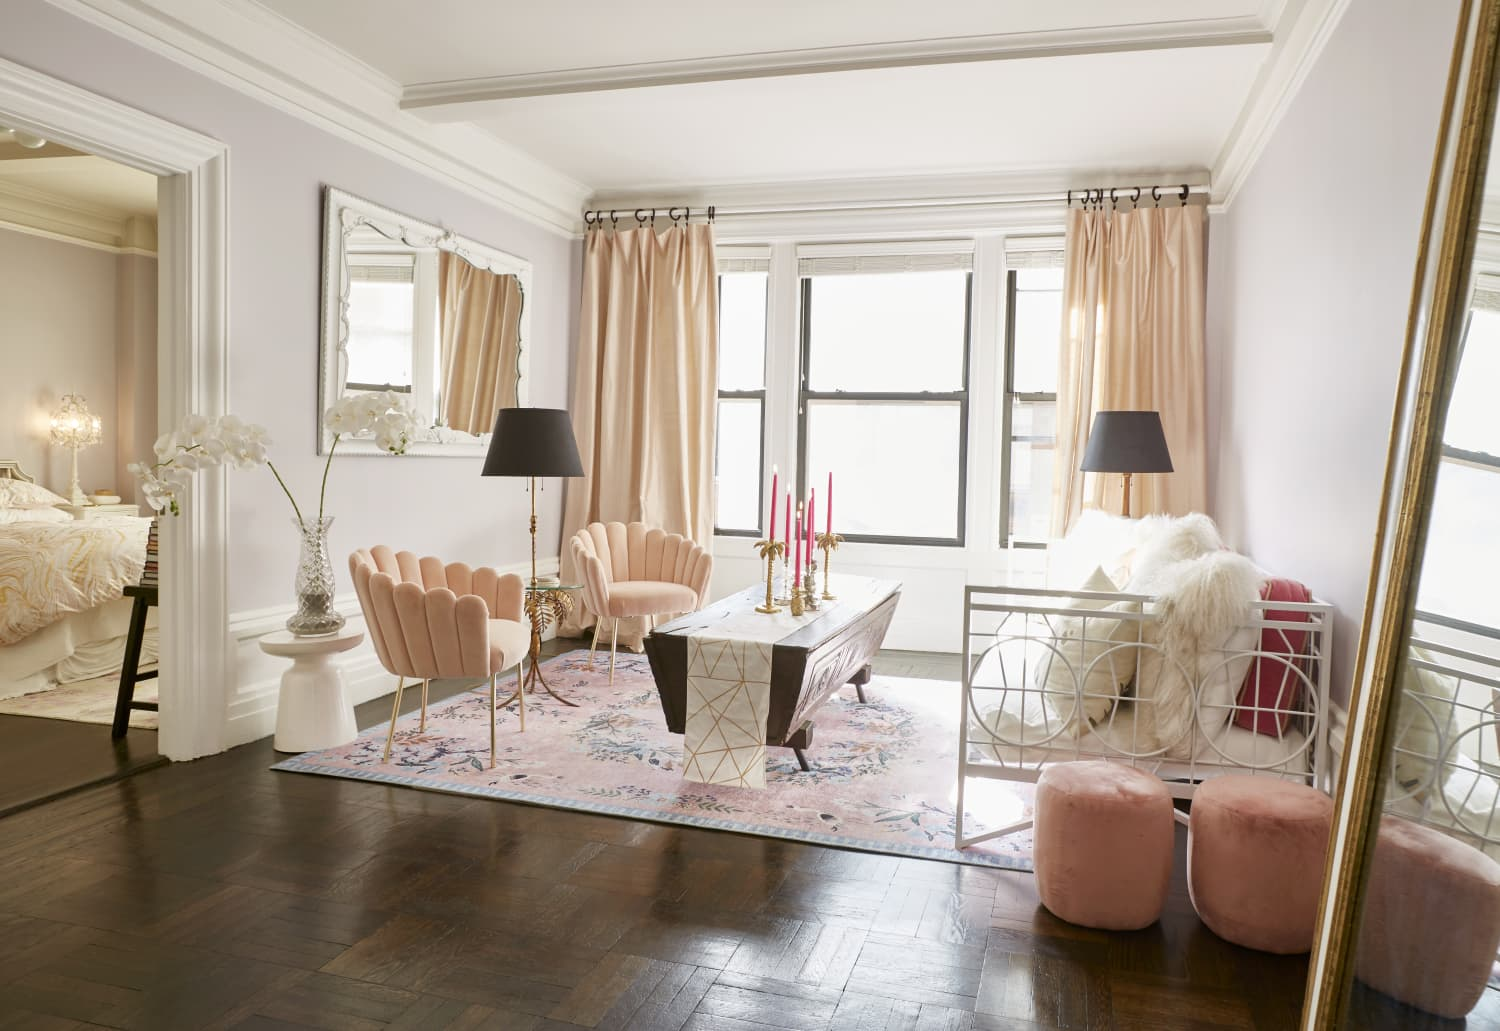 A Small NYC Apartment Shows How to Keep It Simple and Chic